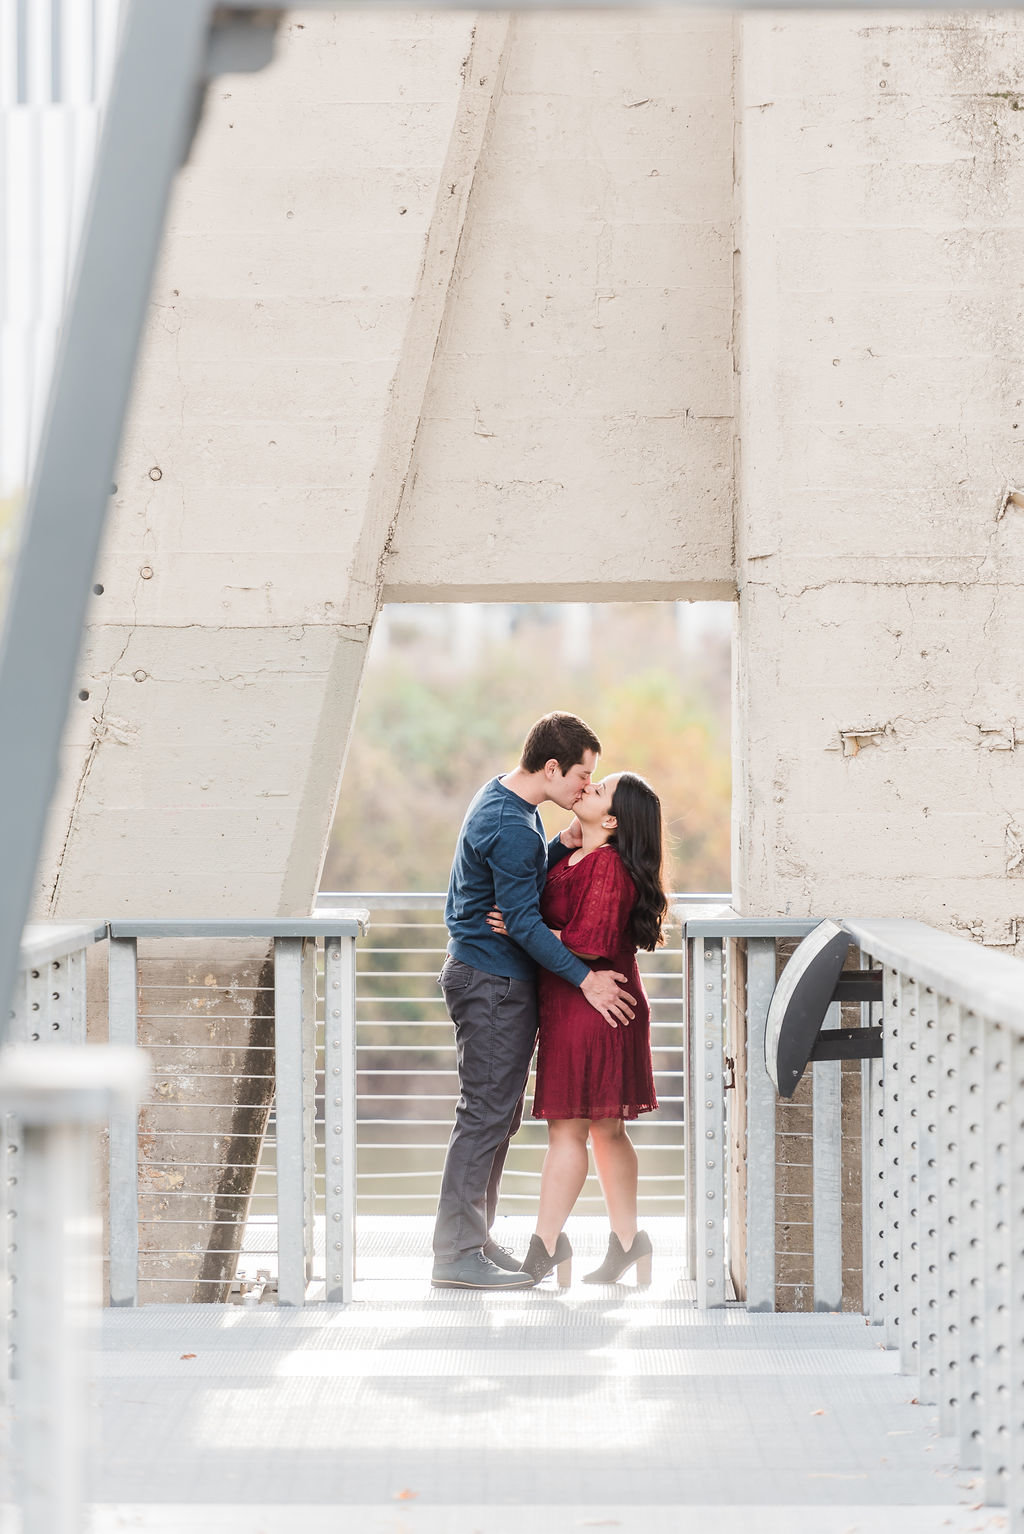 113downtownnashvilleengagement